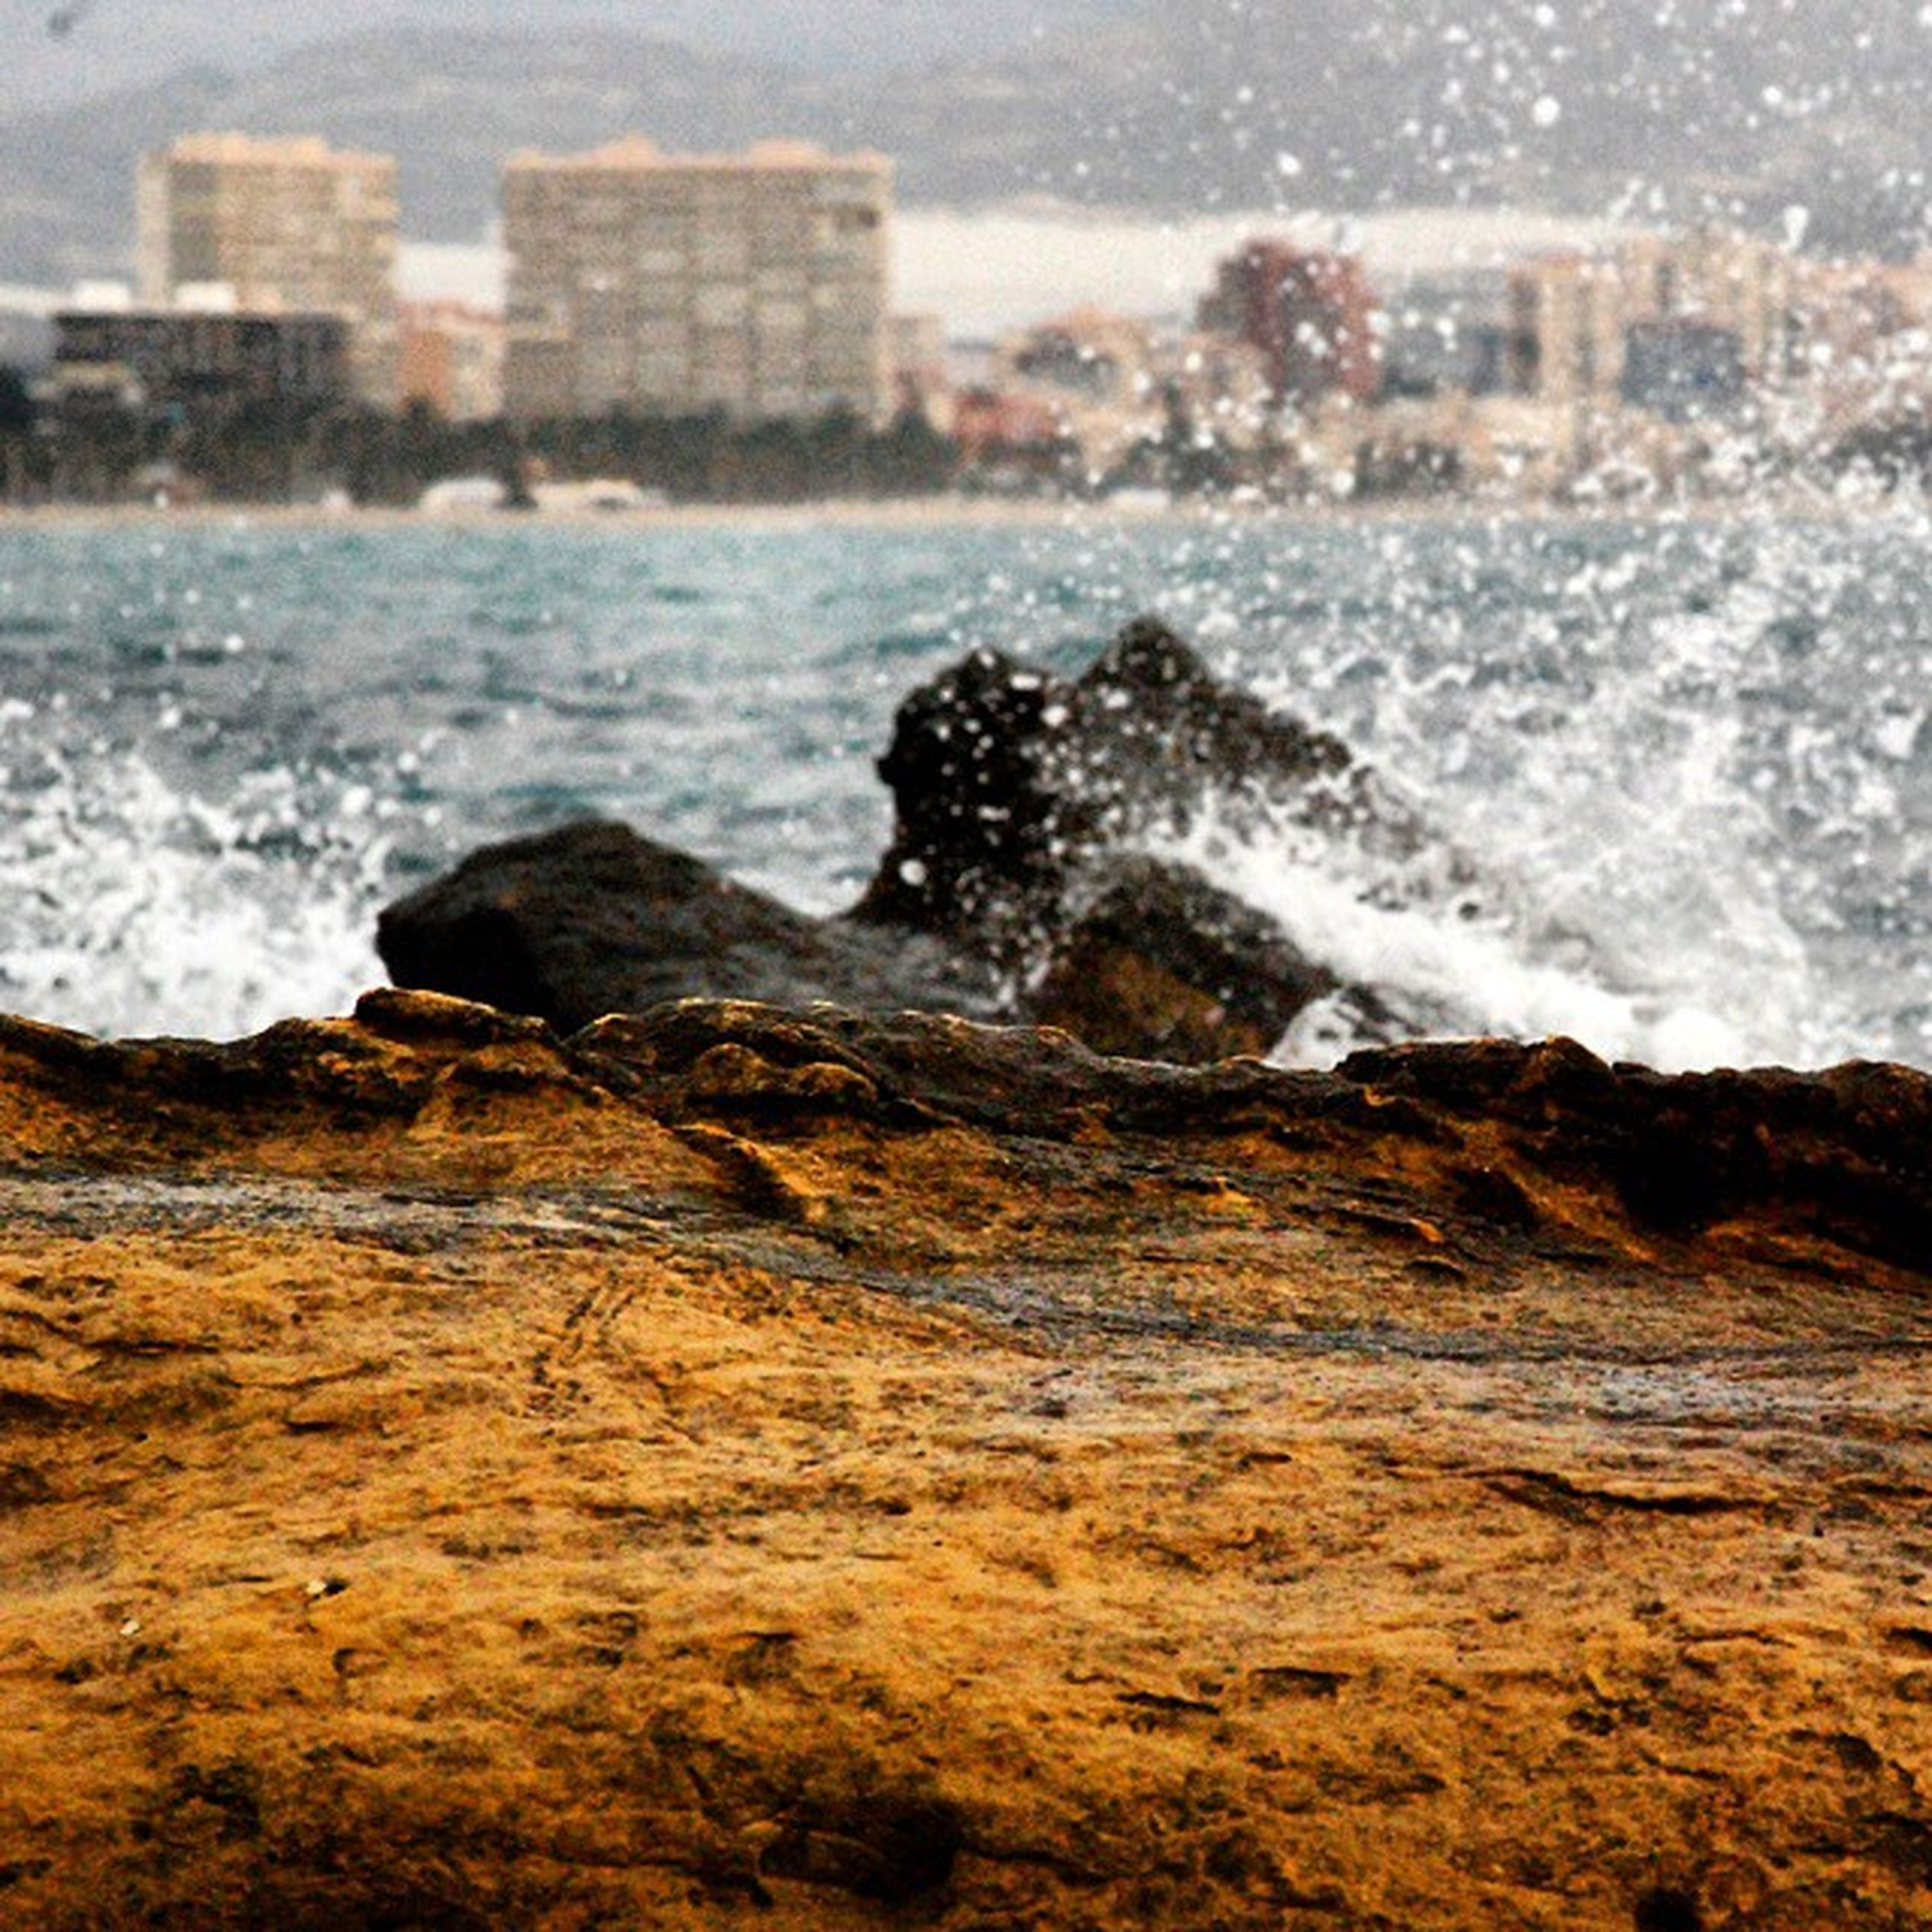 water, surf, wave, sea, splashing, motion, shore, rock - object, beach, power in nature, nature, beauty in nature, scenics, rock formation, rushing, outdoors, day, no people, coastline, rock